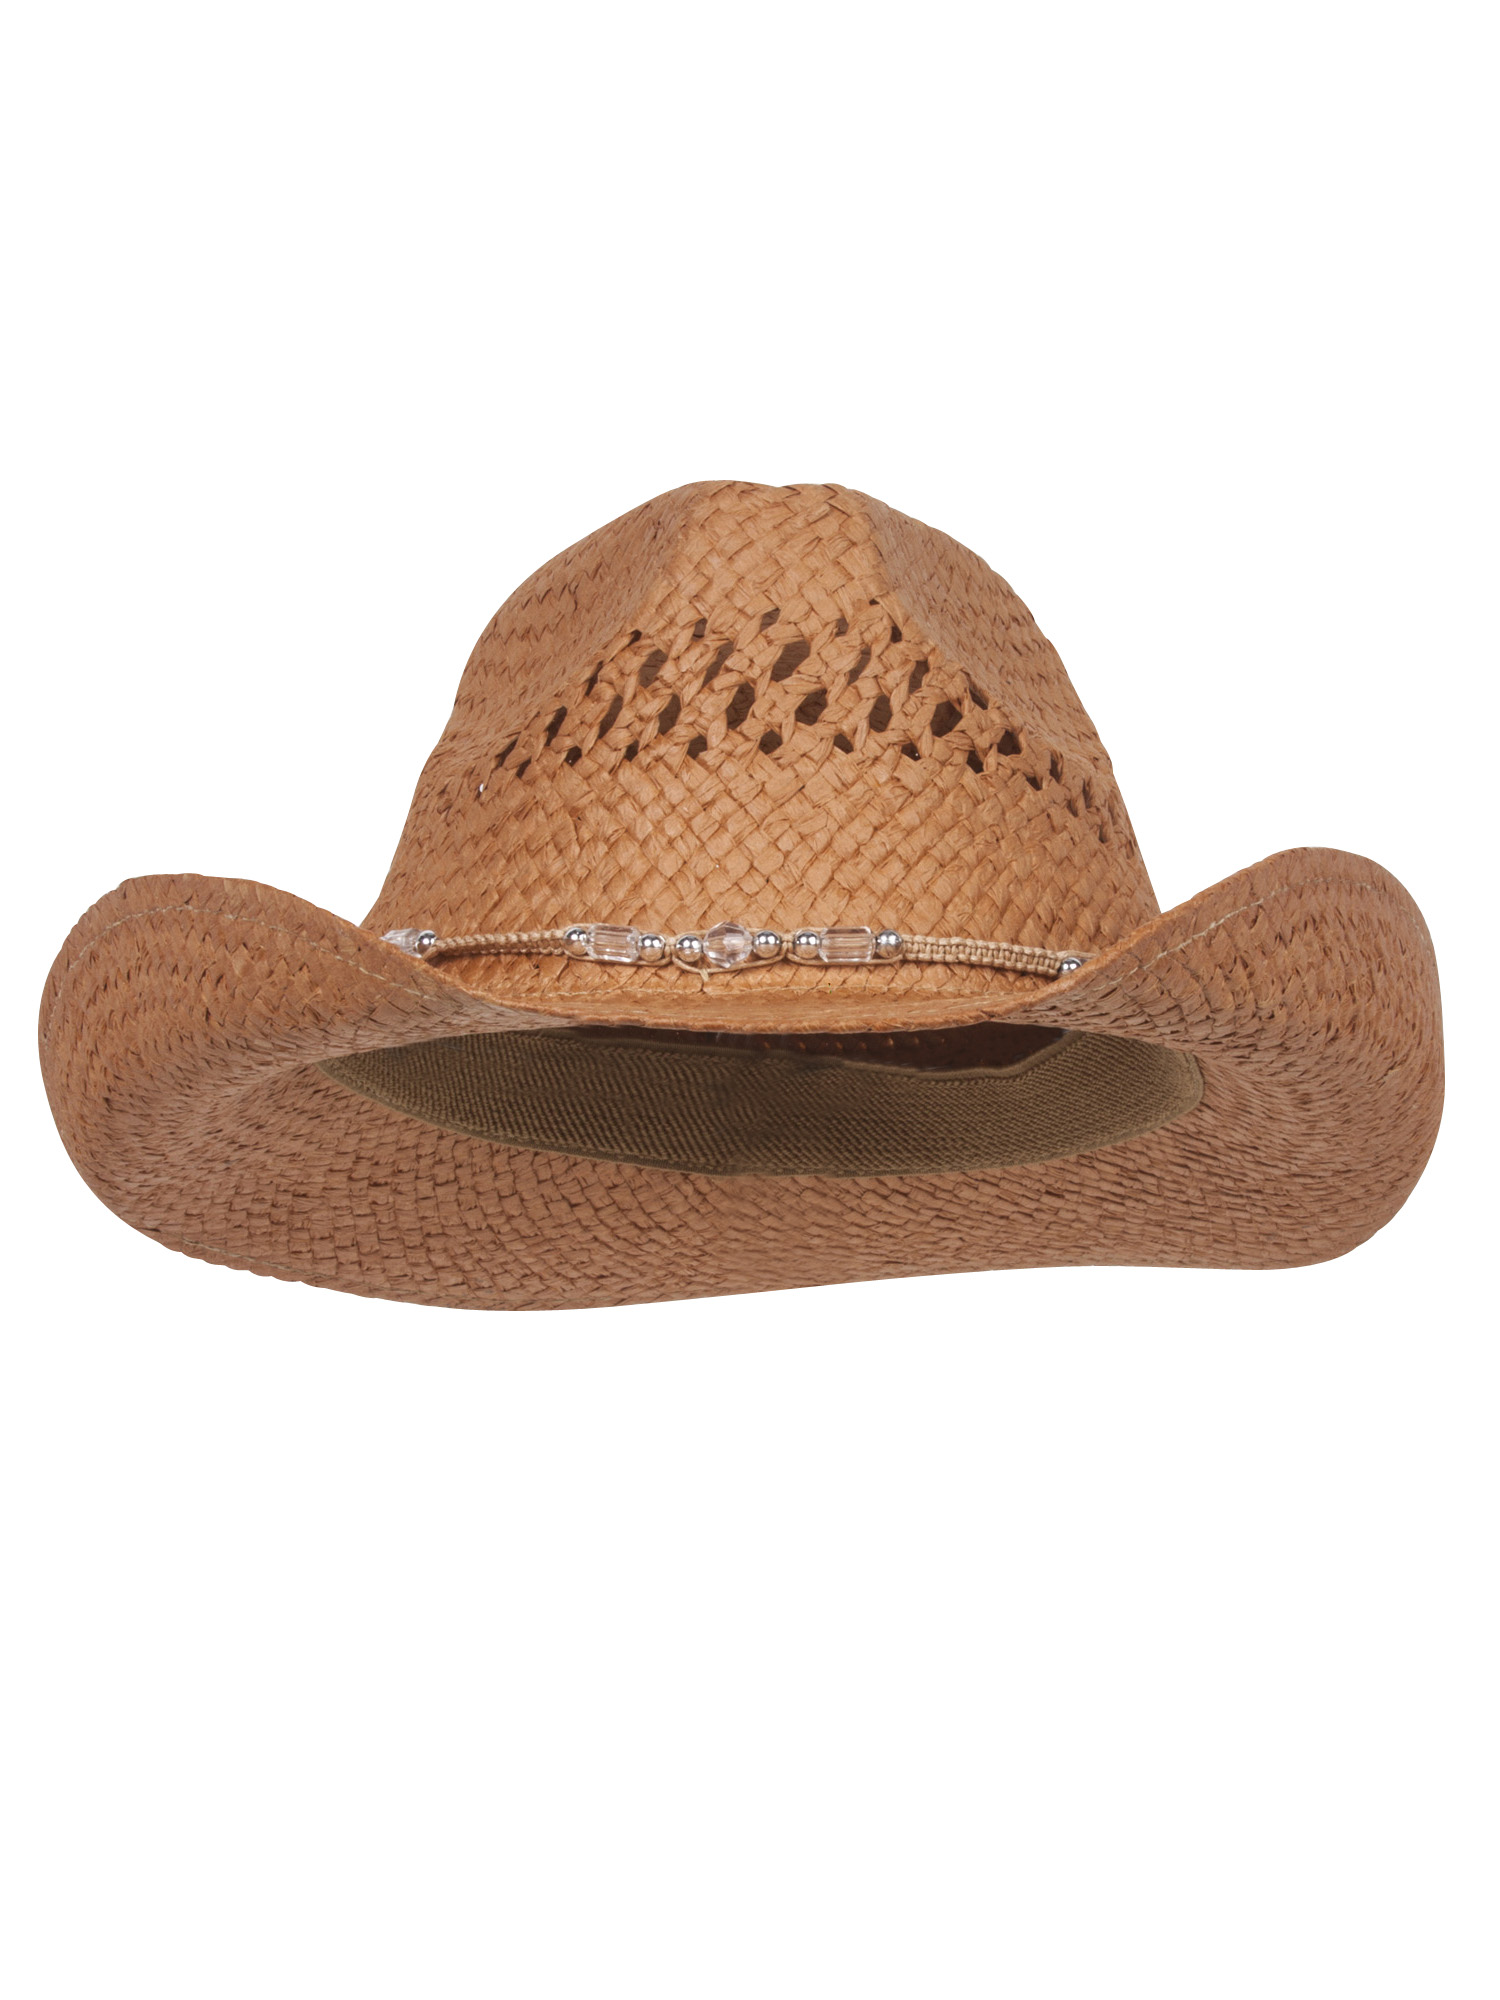 MG Unisex Outback Toyo Cowboy Hat-8178